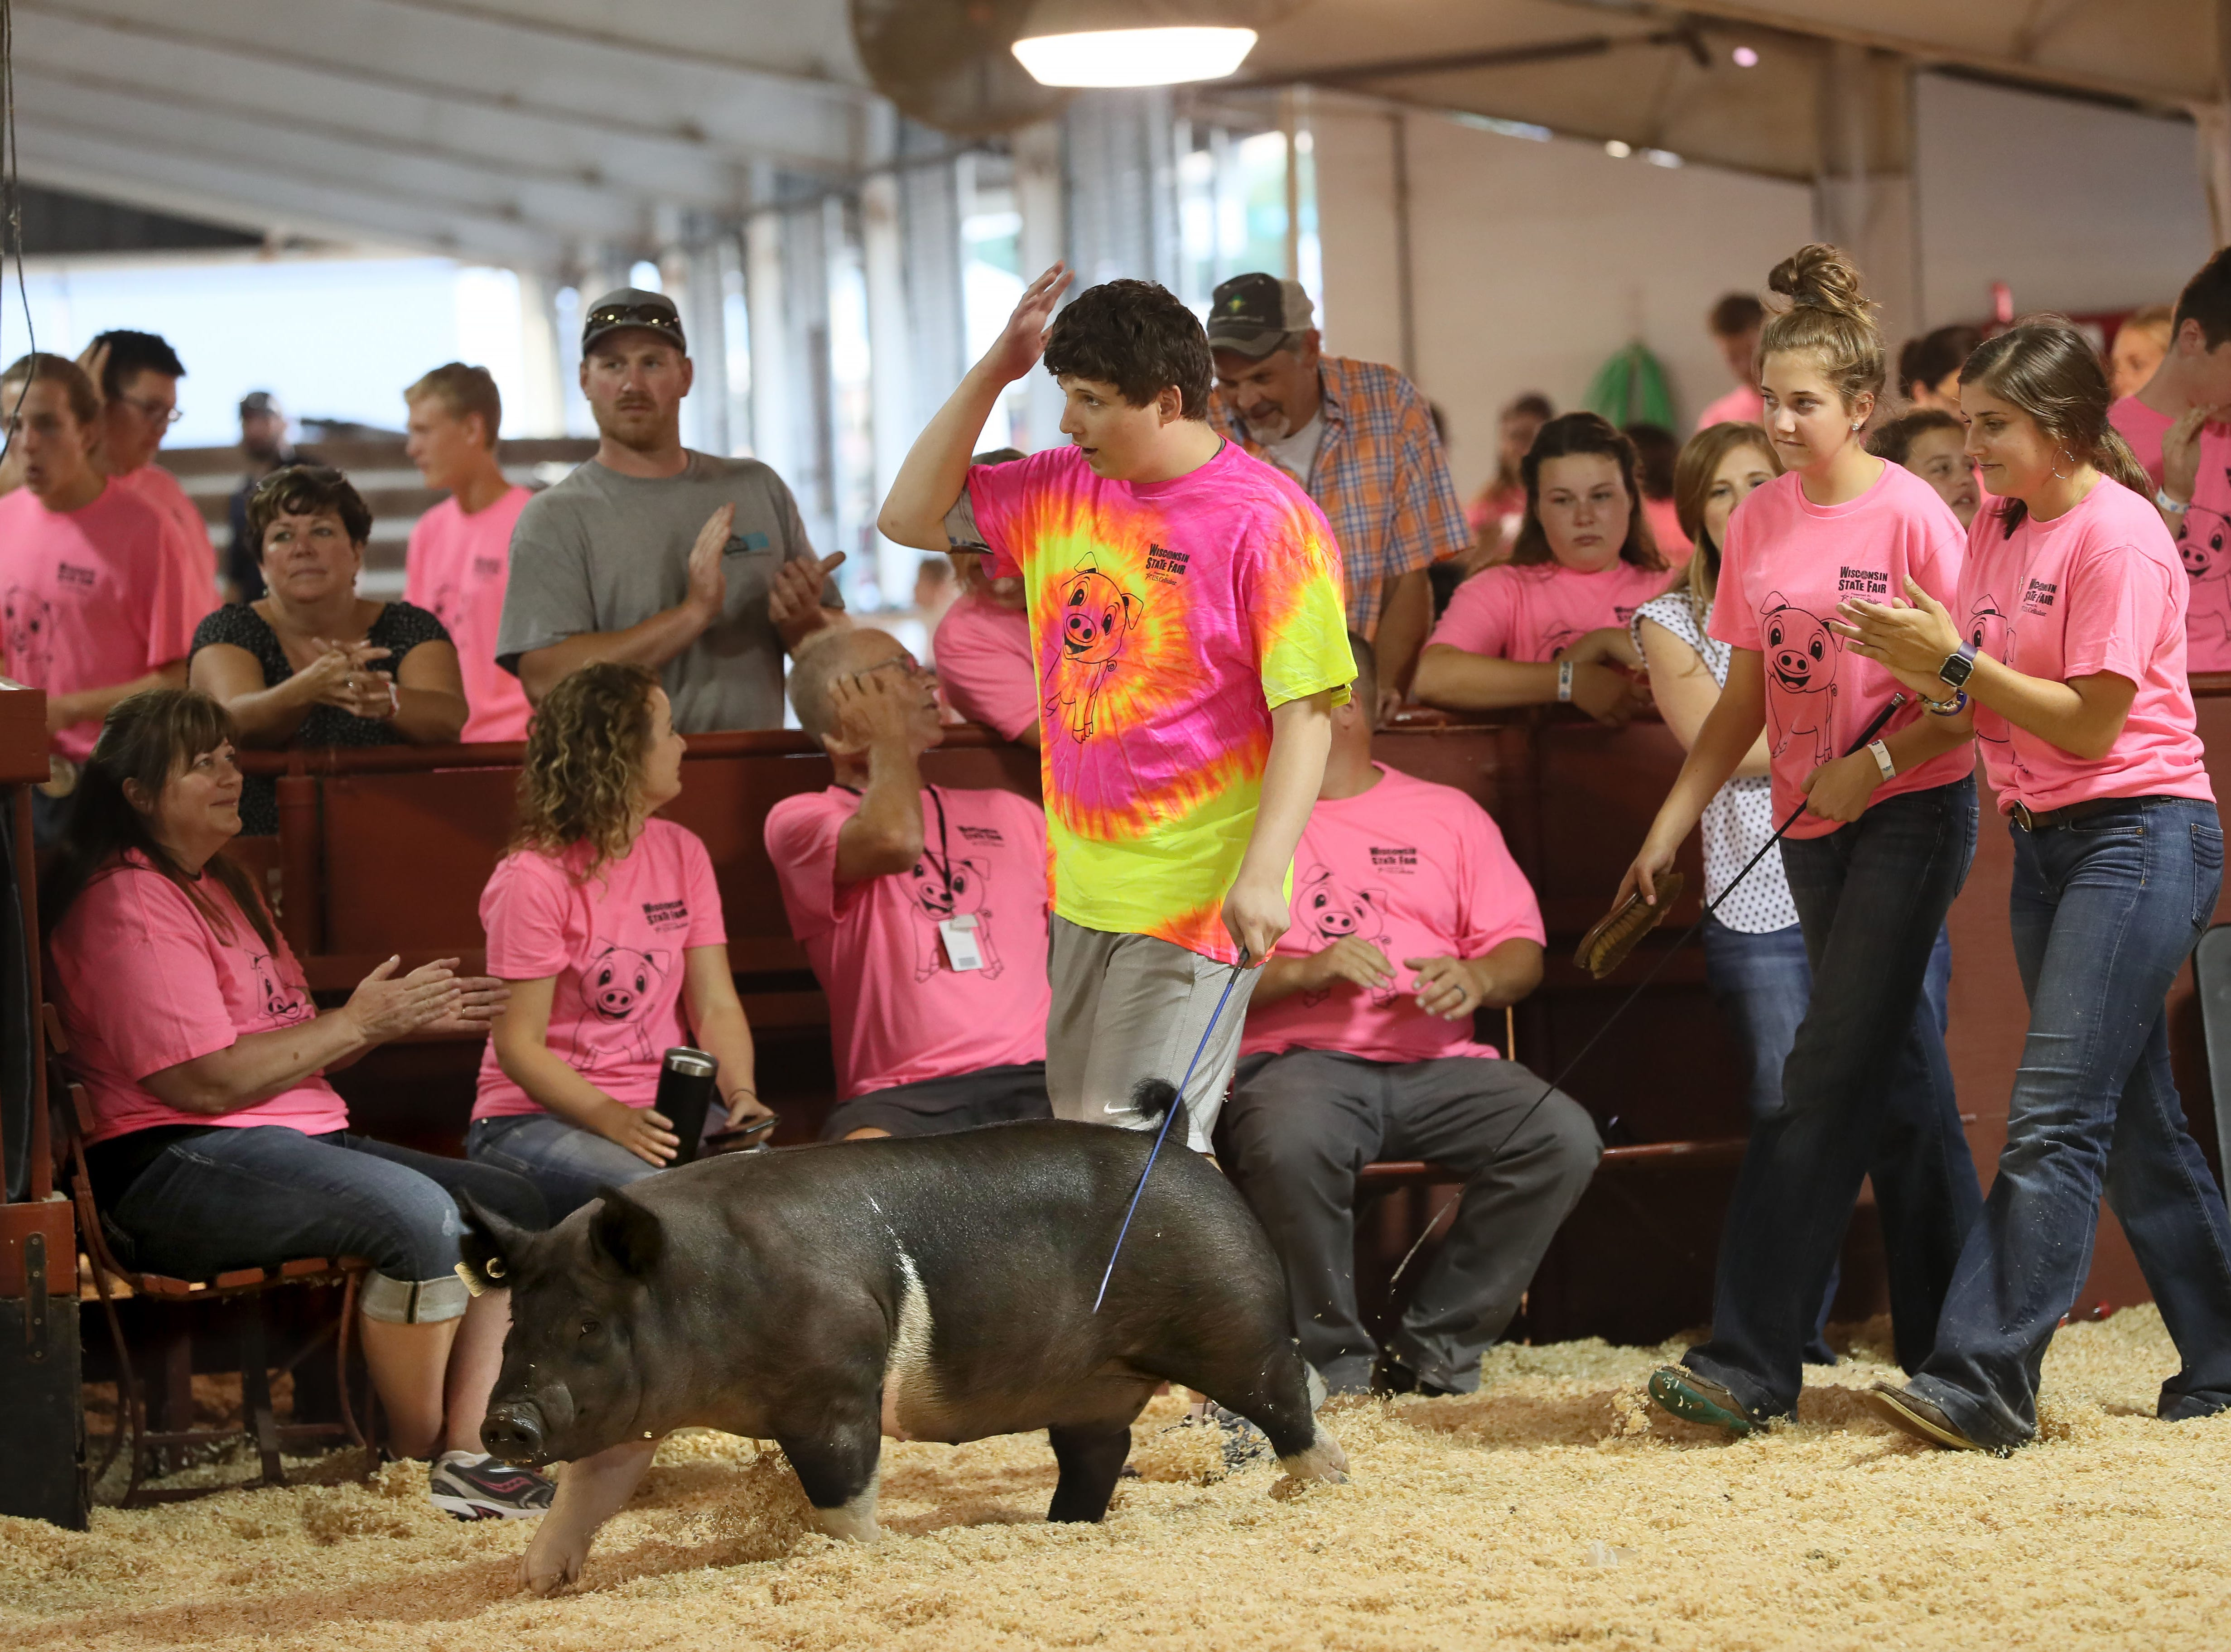 At Wisconsin State Fair, Alex Kuri, 17, of Muskego, shows a pig named Oakley,while being coached by mentors, Elysa Doherty (right), 19, and her sister Isabelle Doherty, 14, both of Johnson Creek.